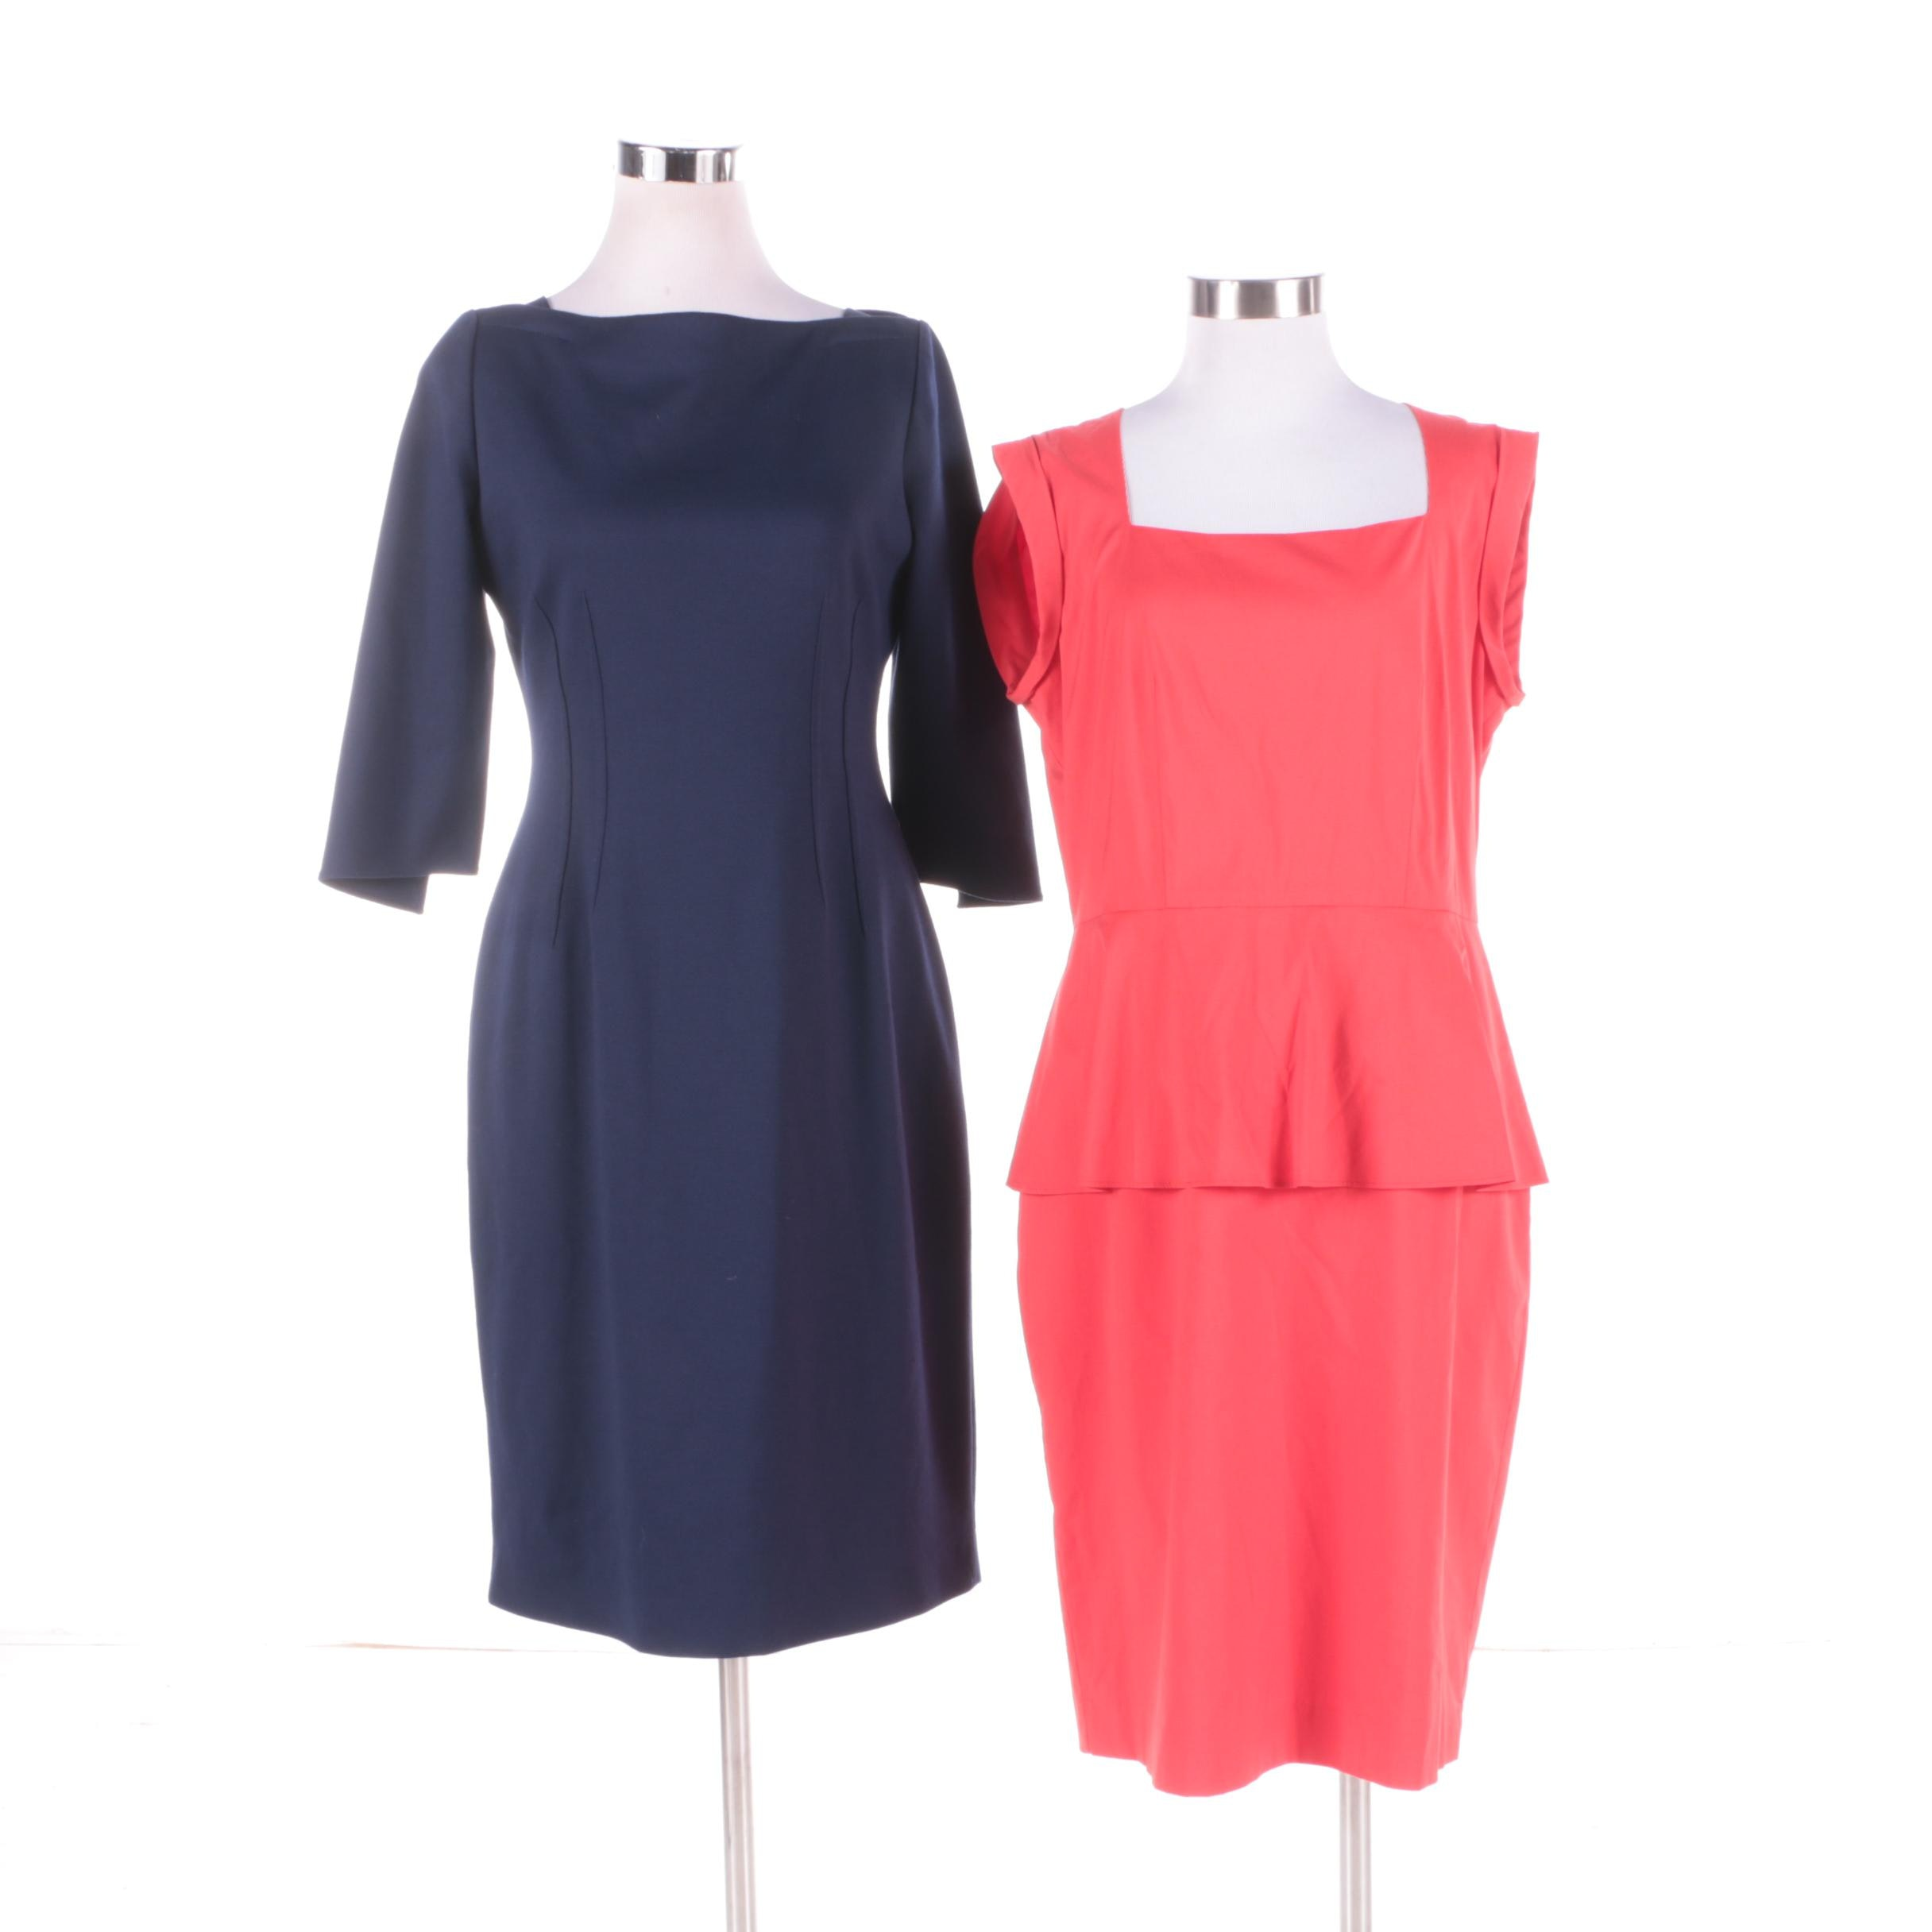 Women's Lafayette148 New York and Elie Tahari Dresses